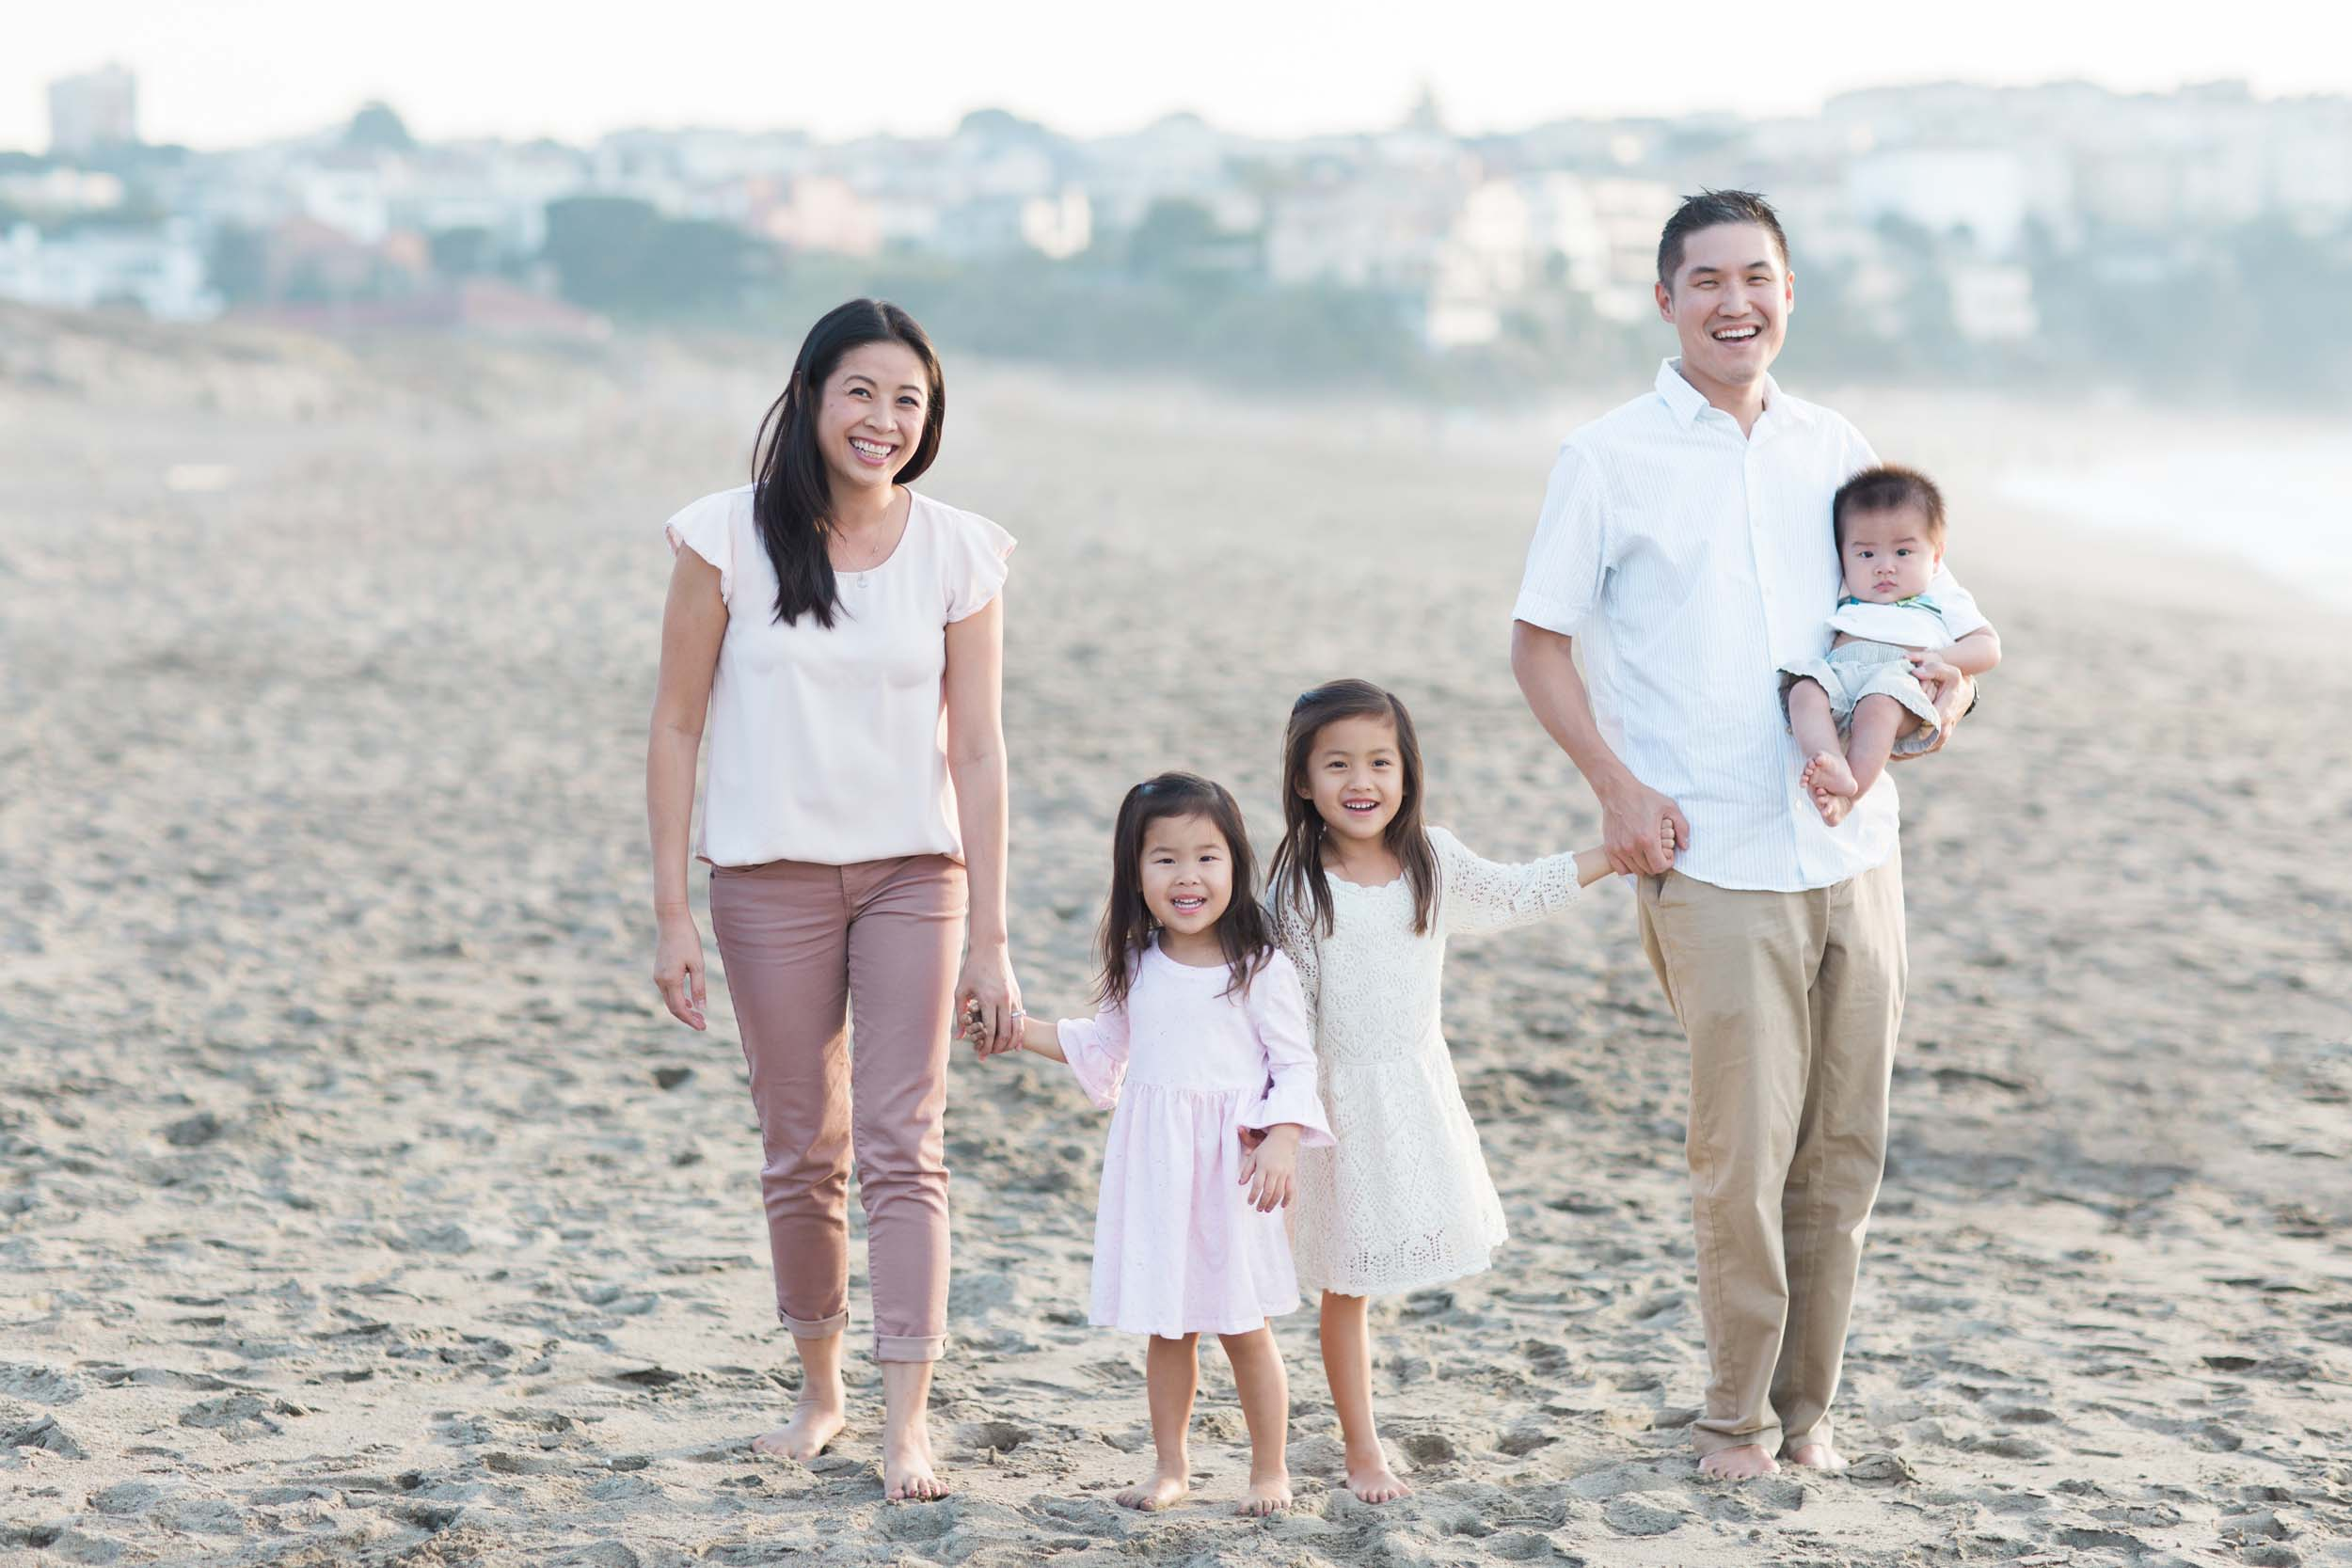 A family smiles and holds hands on a beach in San Francisco.